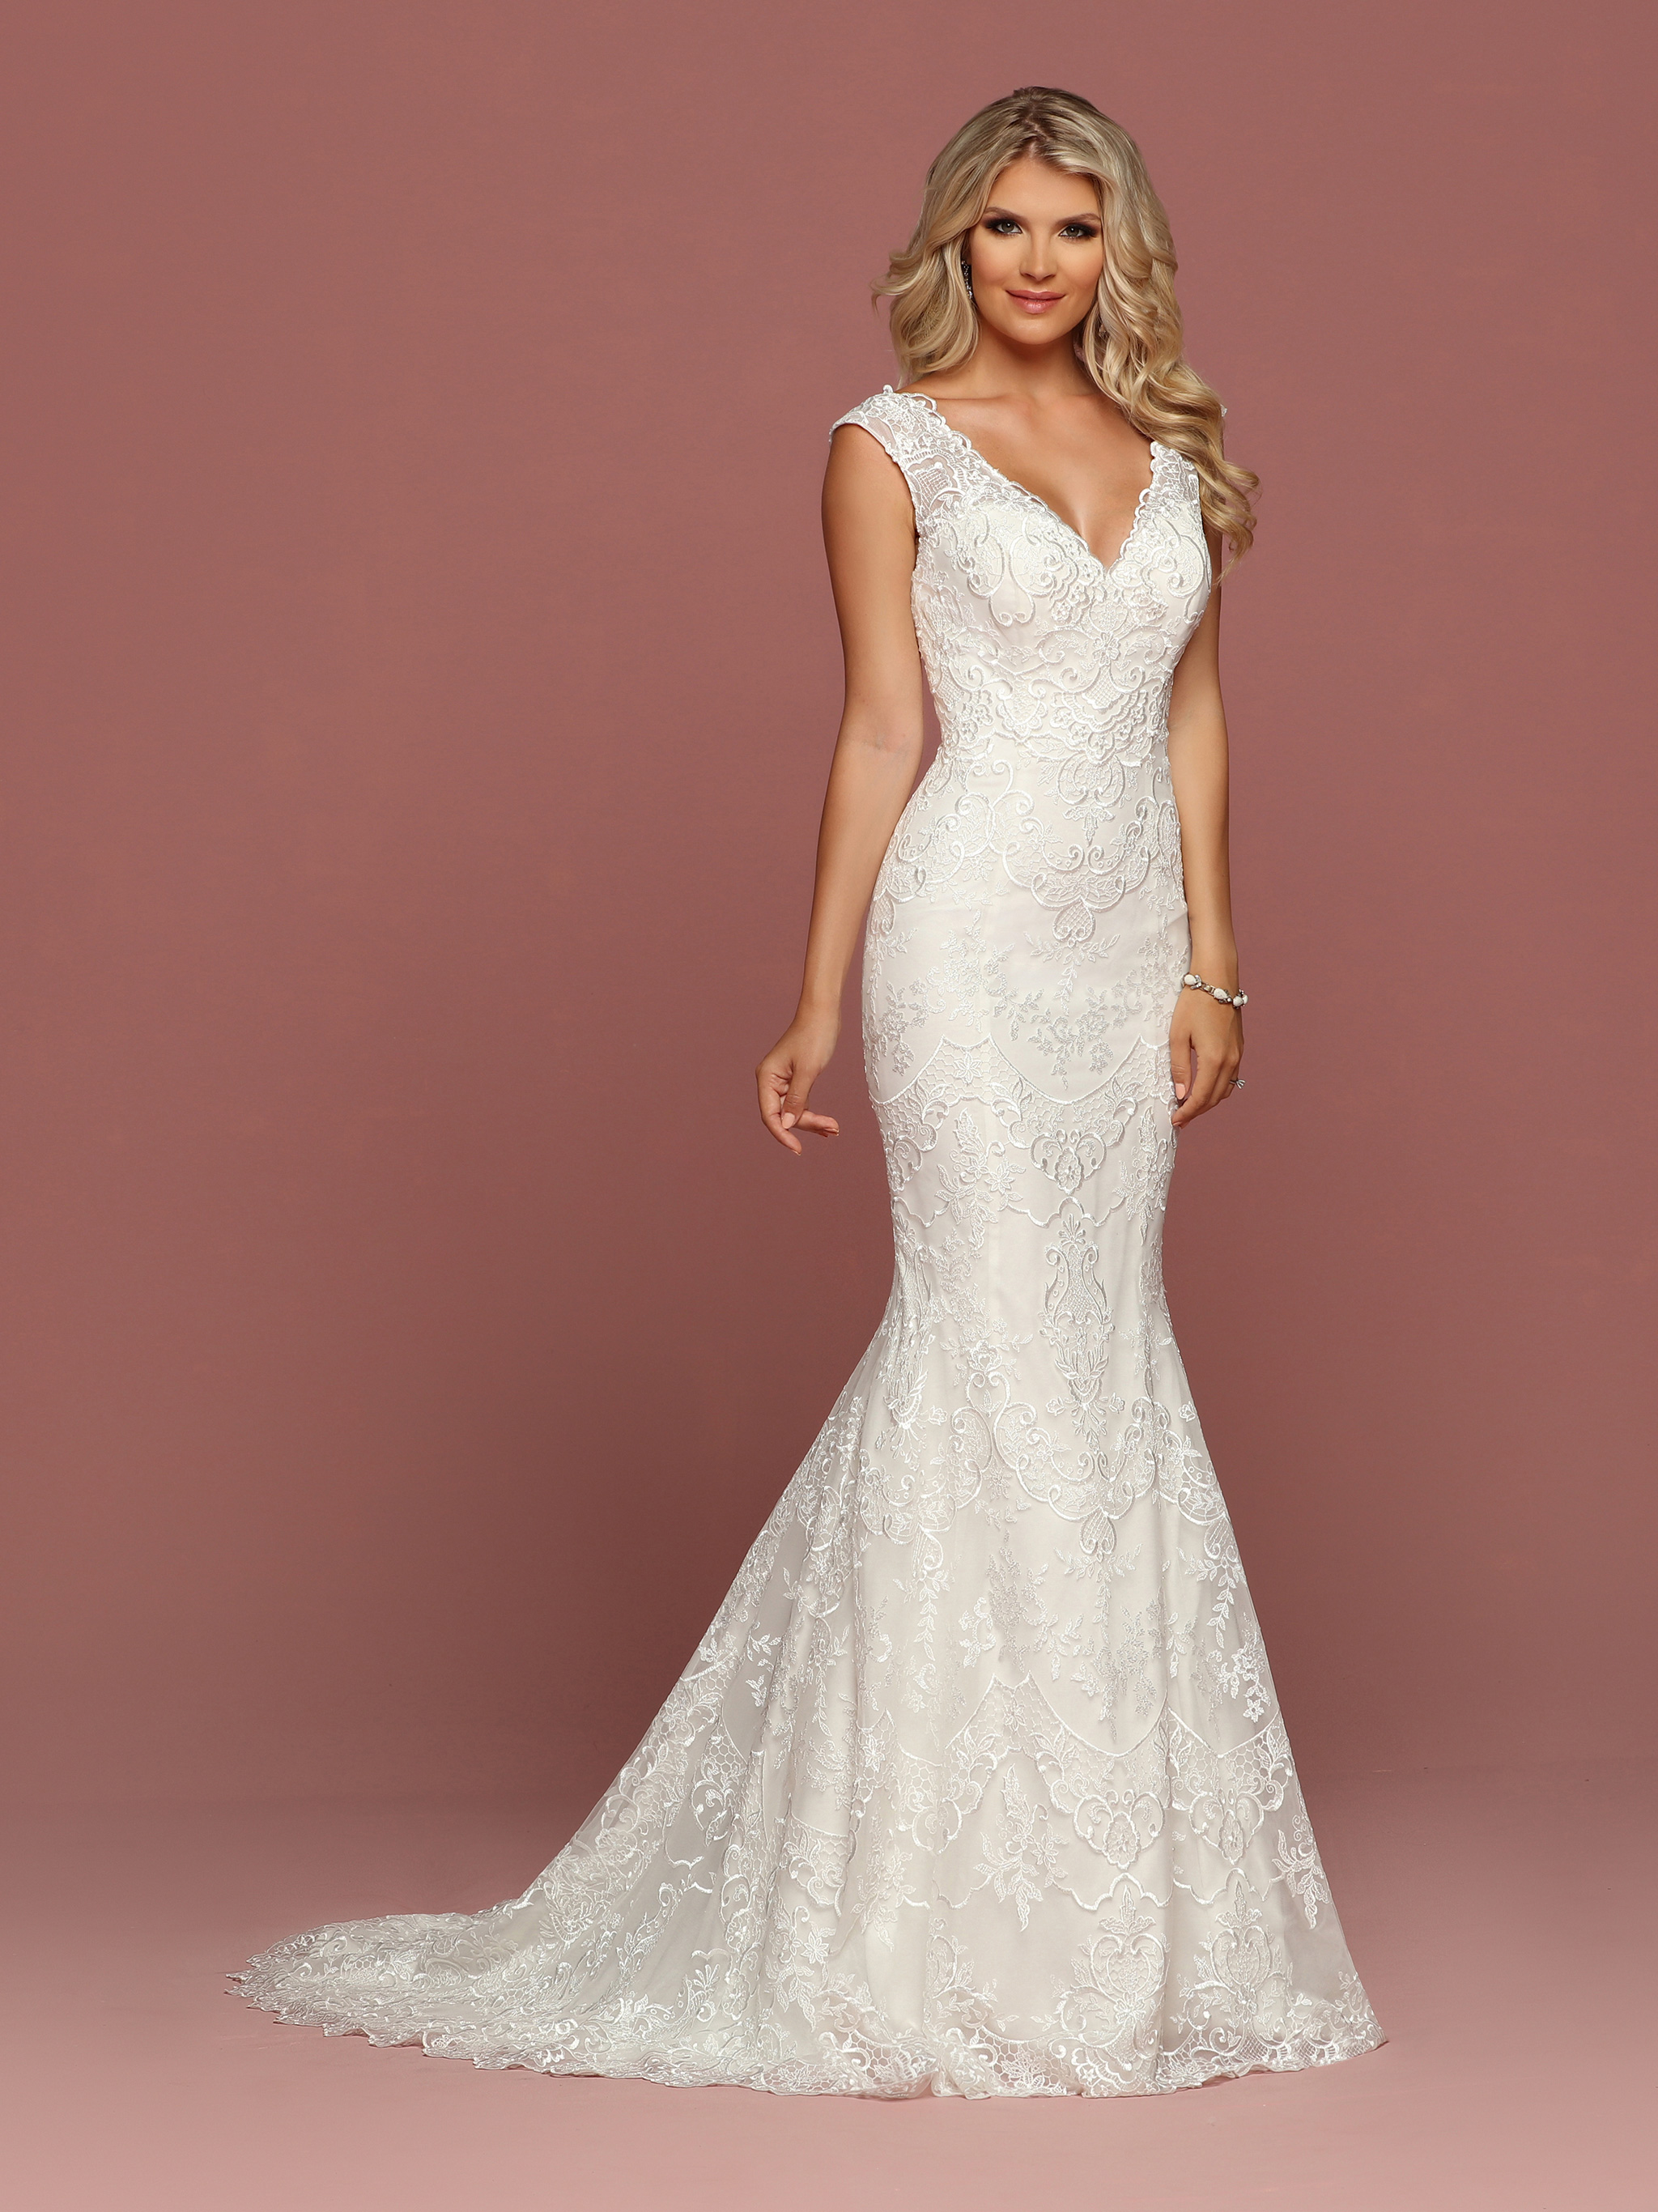 Davinci wedding dresses davinci bridal davinci bridal our flagship collection was created for the savvy bride who wants an elegant high quality wedding dress at a more affordable price junglespirit Choice Image